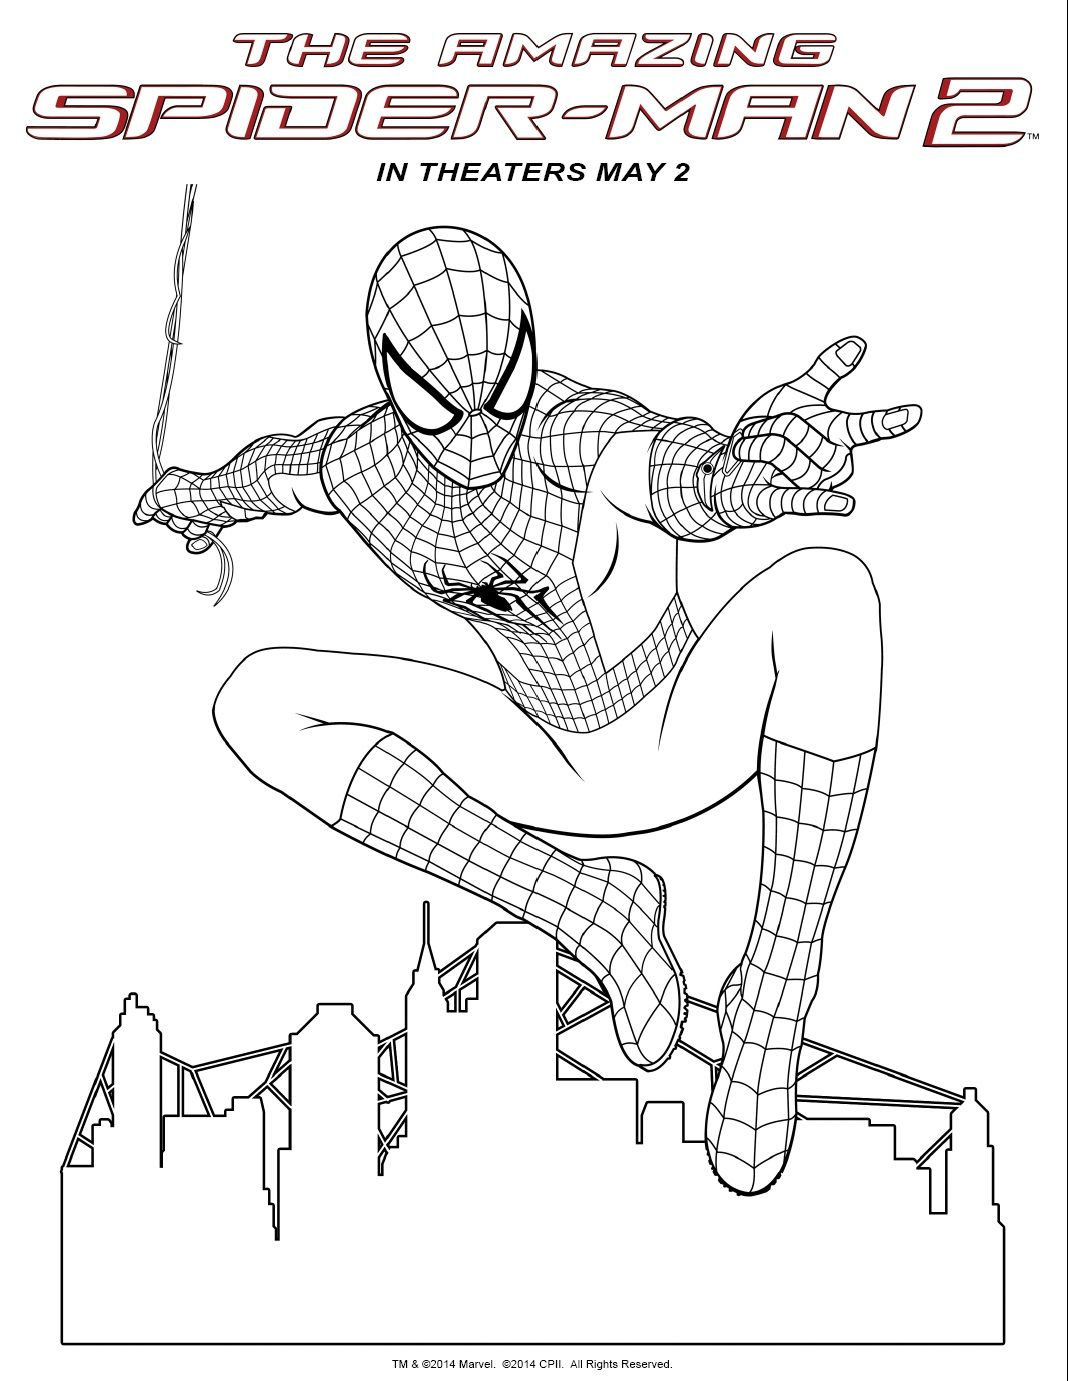 Spiderman Coloring Pages To Print Coloring Pages Spider Coloring Page Spiderman Coloring Superhero Coloring Pages